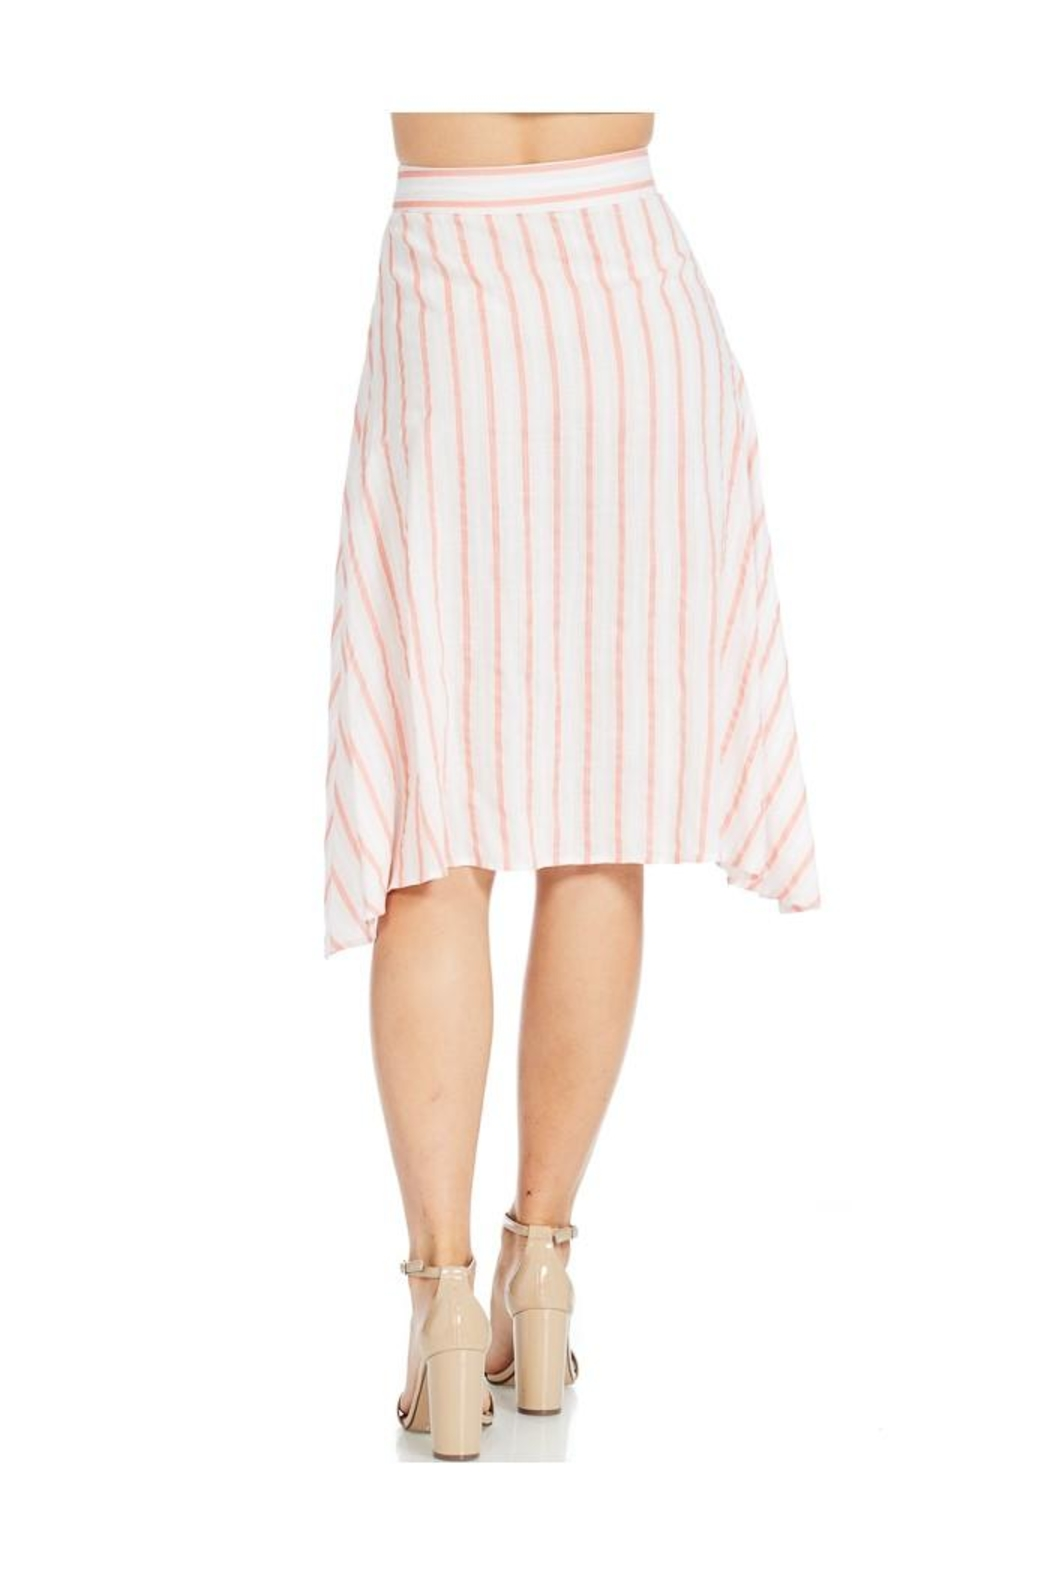 Miley and Molly Linen Stripe Button Front A-Line Midi Skirt - Back Cropped Image